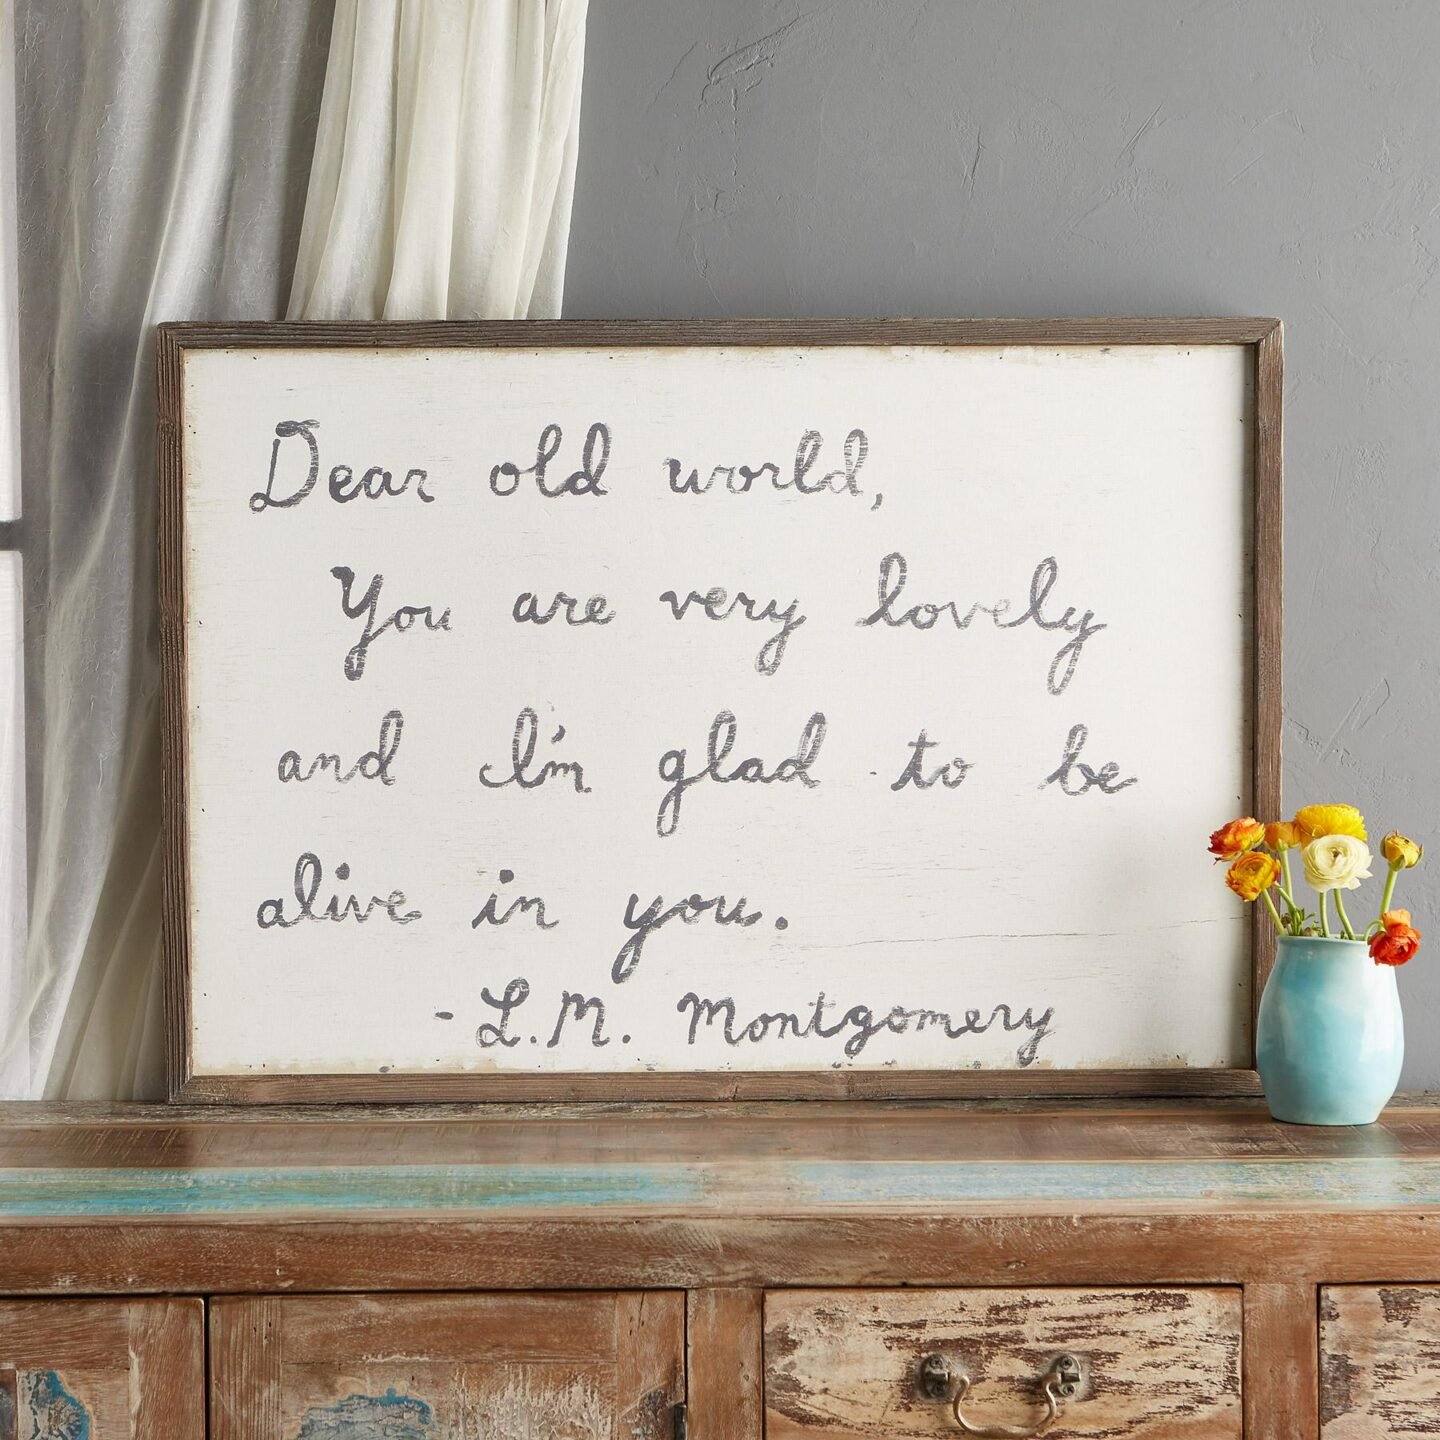 Dear Old World print with quote by Lucy Montgomery in rustic wood frame - Sundance. #gratitudequotes #framedprints #frenchcountry #countrydecor #wallart #homedecor